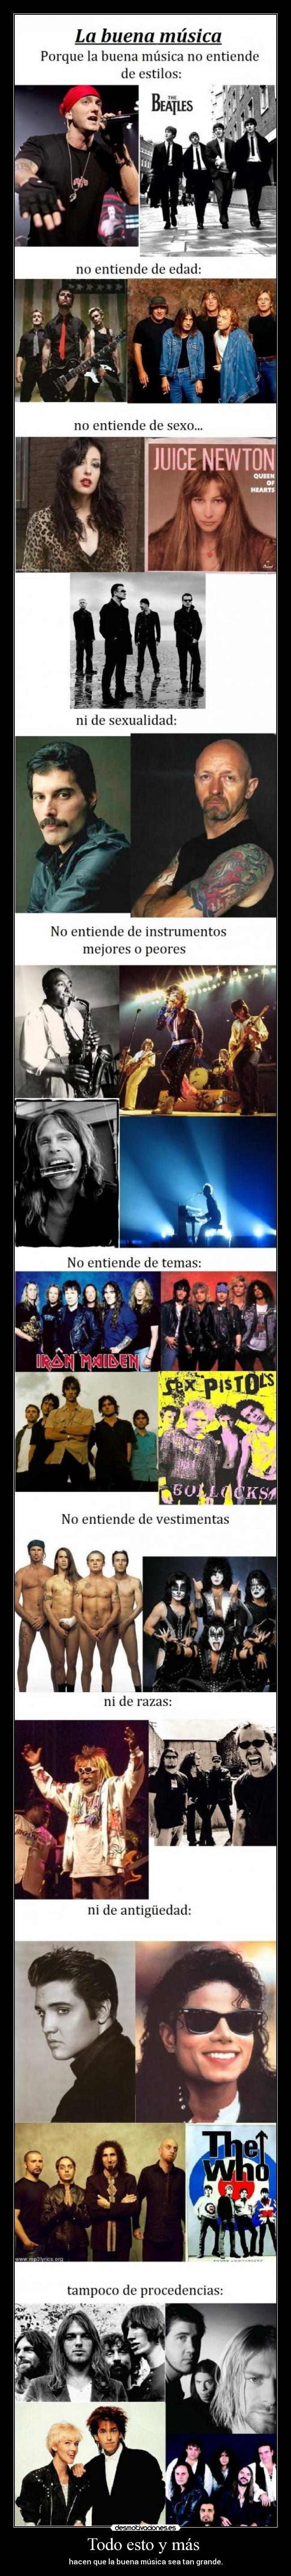 carteles buena musica folk rock rap metal country pop desmotivaciones